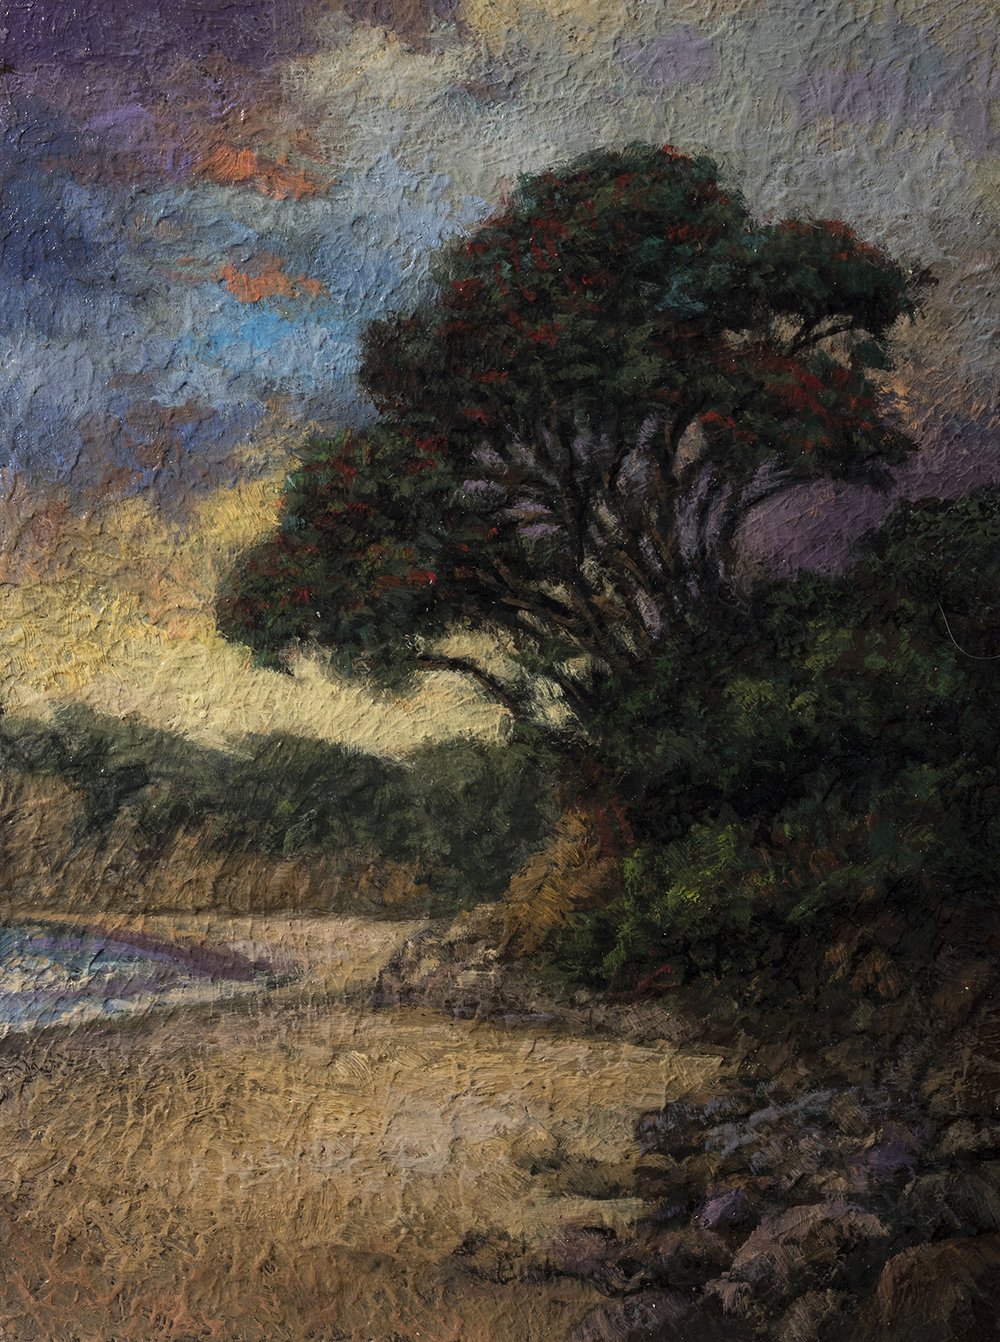 Tree by the Shore by M Francis McCarthy - 6x8 Oil on Wood Panel